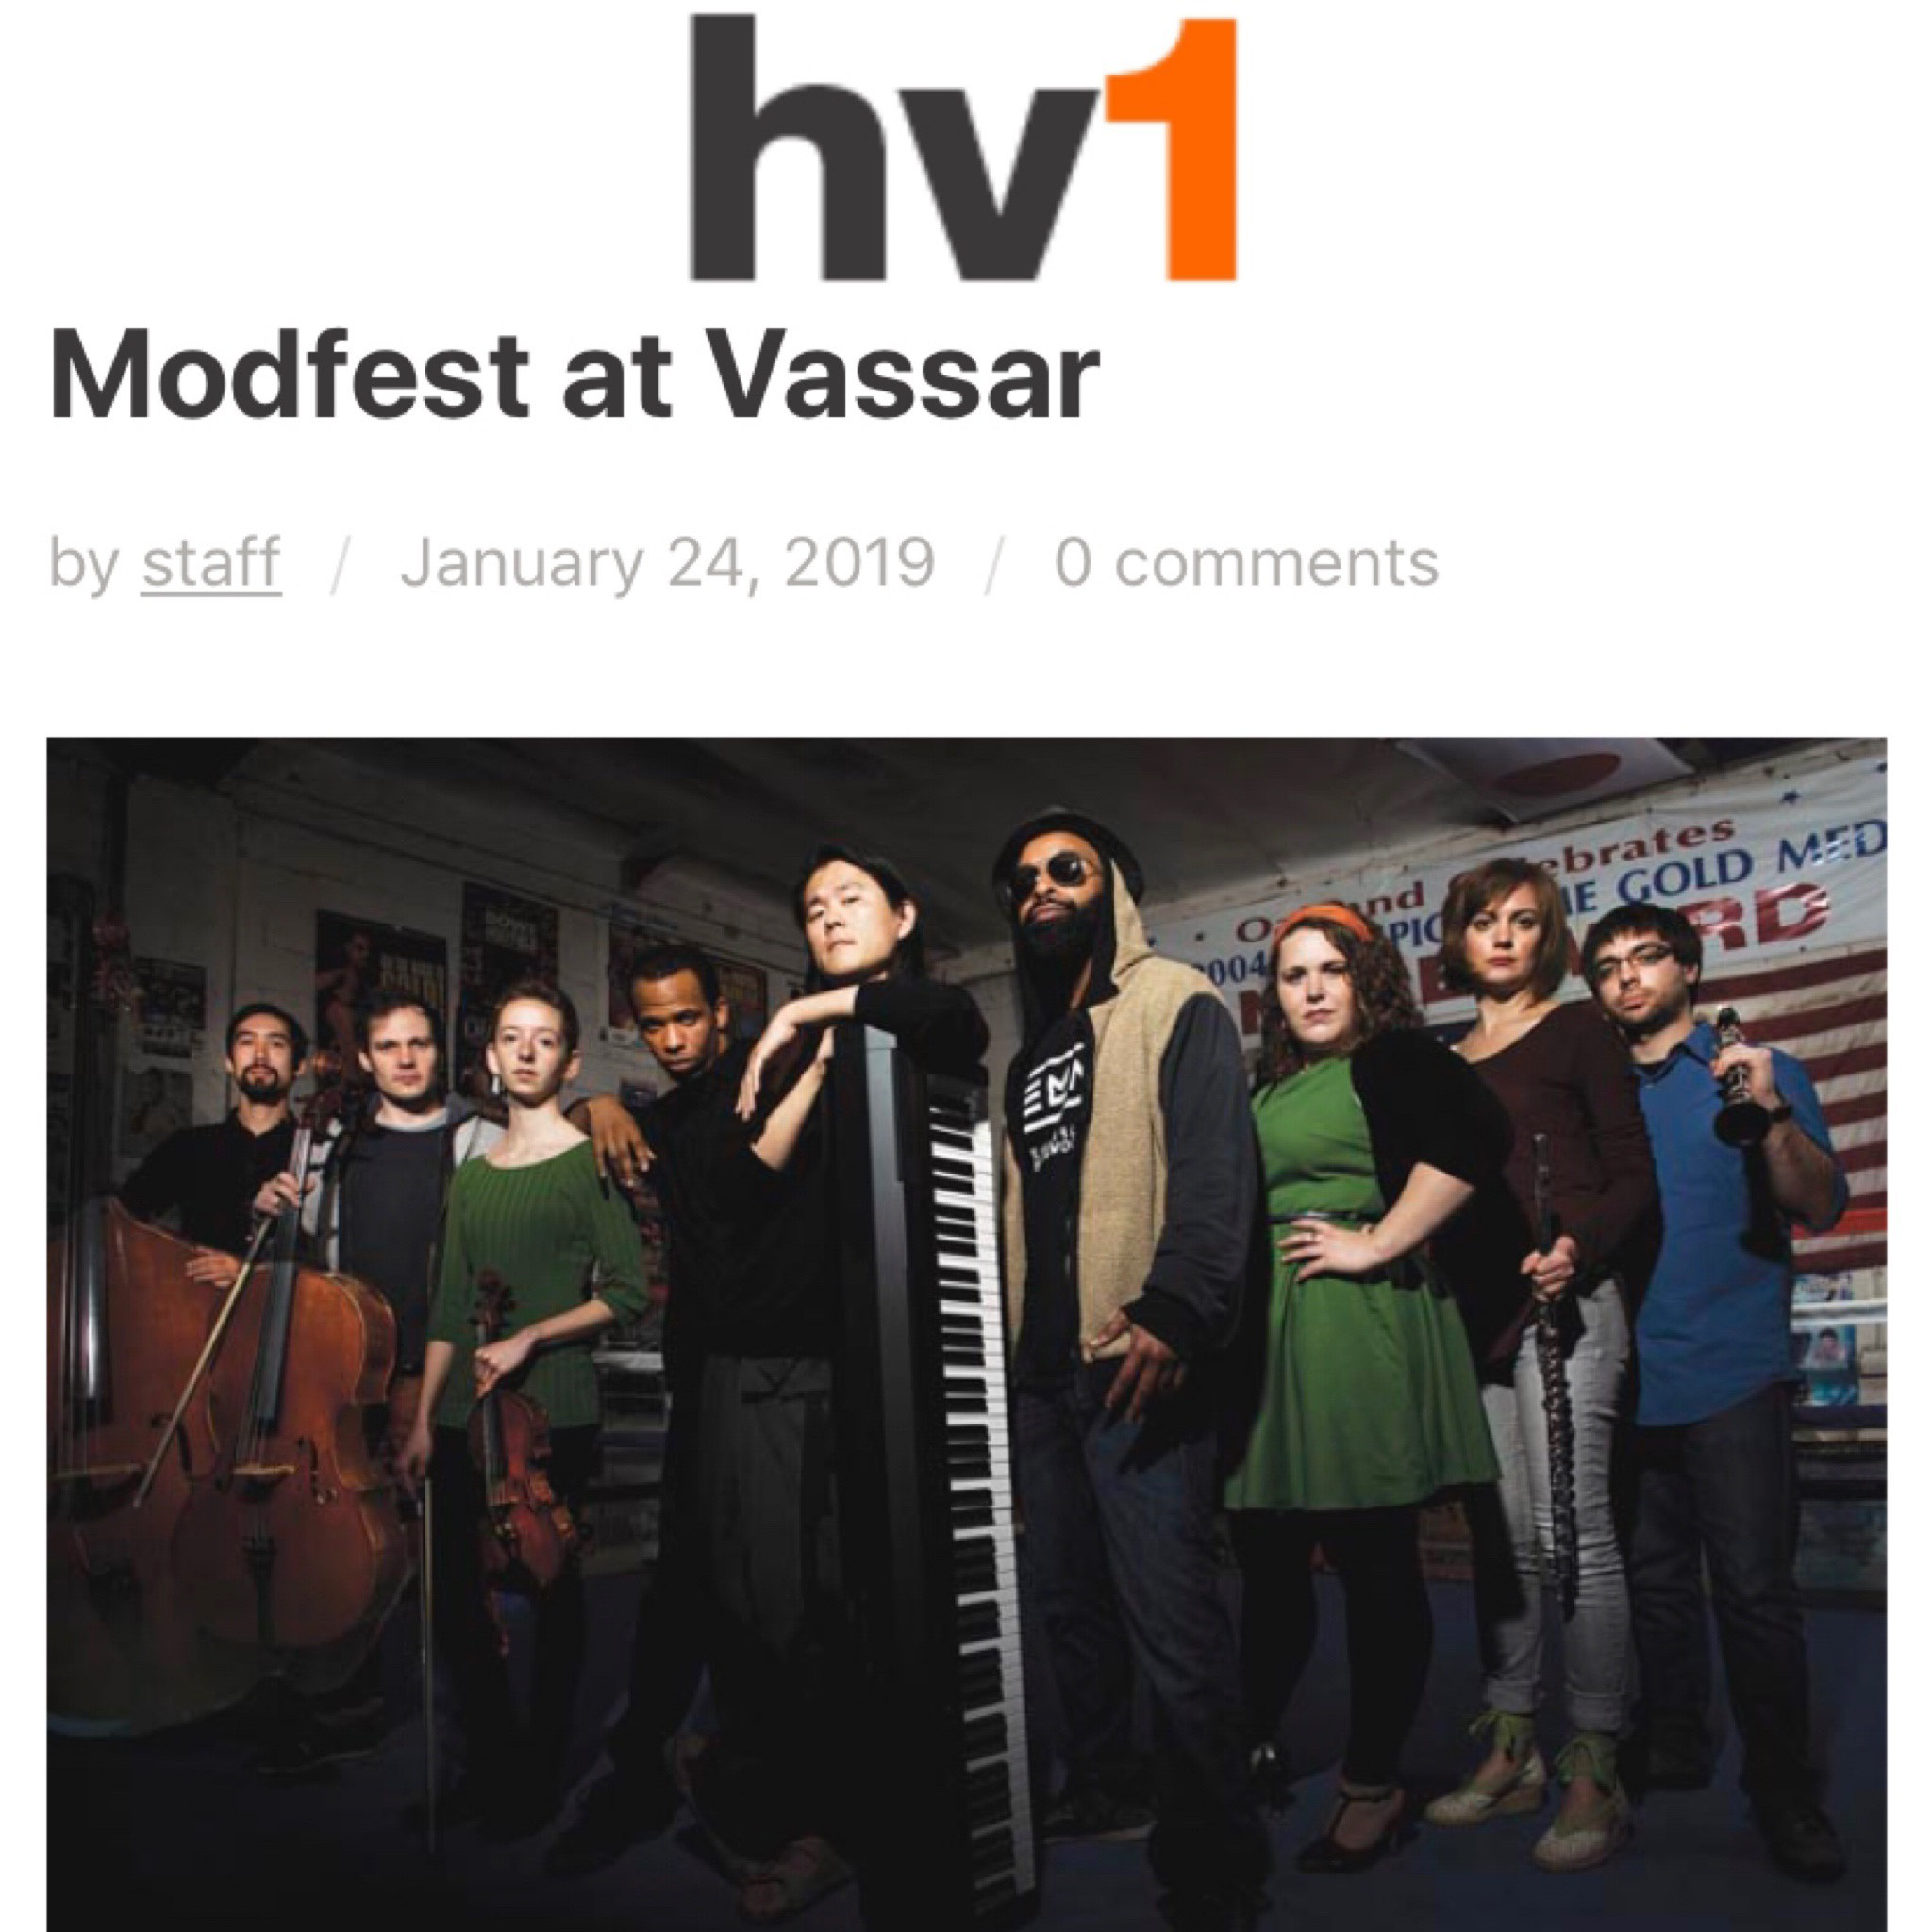 Vassar's modern serious music festival Modfest serves up nearly two weeks of thematically connected music, lectures, films and more in venues around the Vassar campus and – for the first time this year – off-campus as well.   Full article here